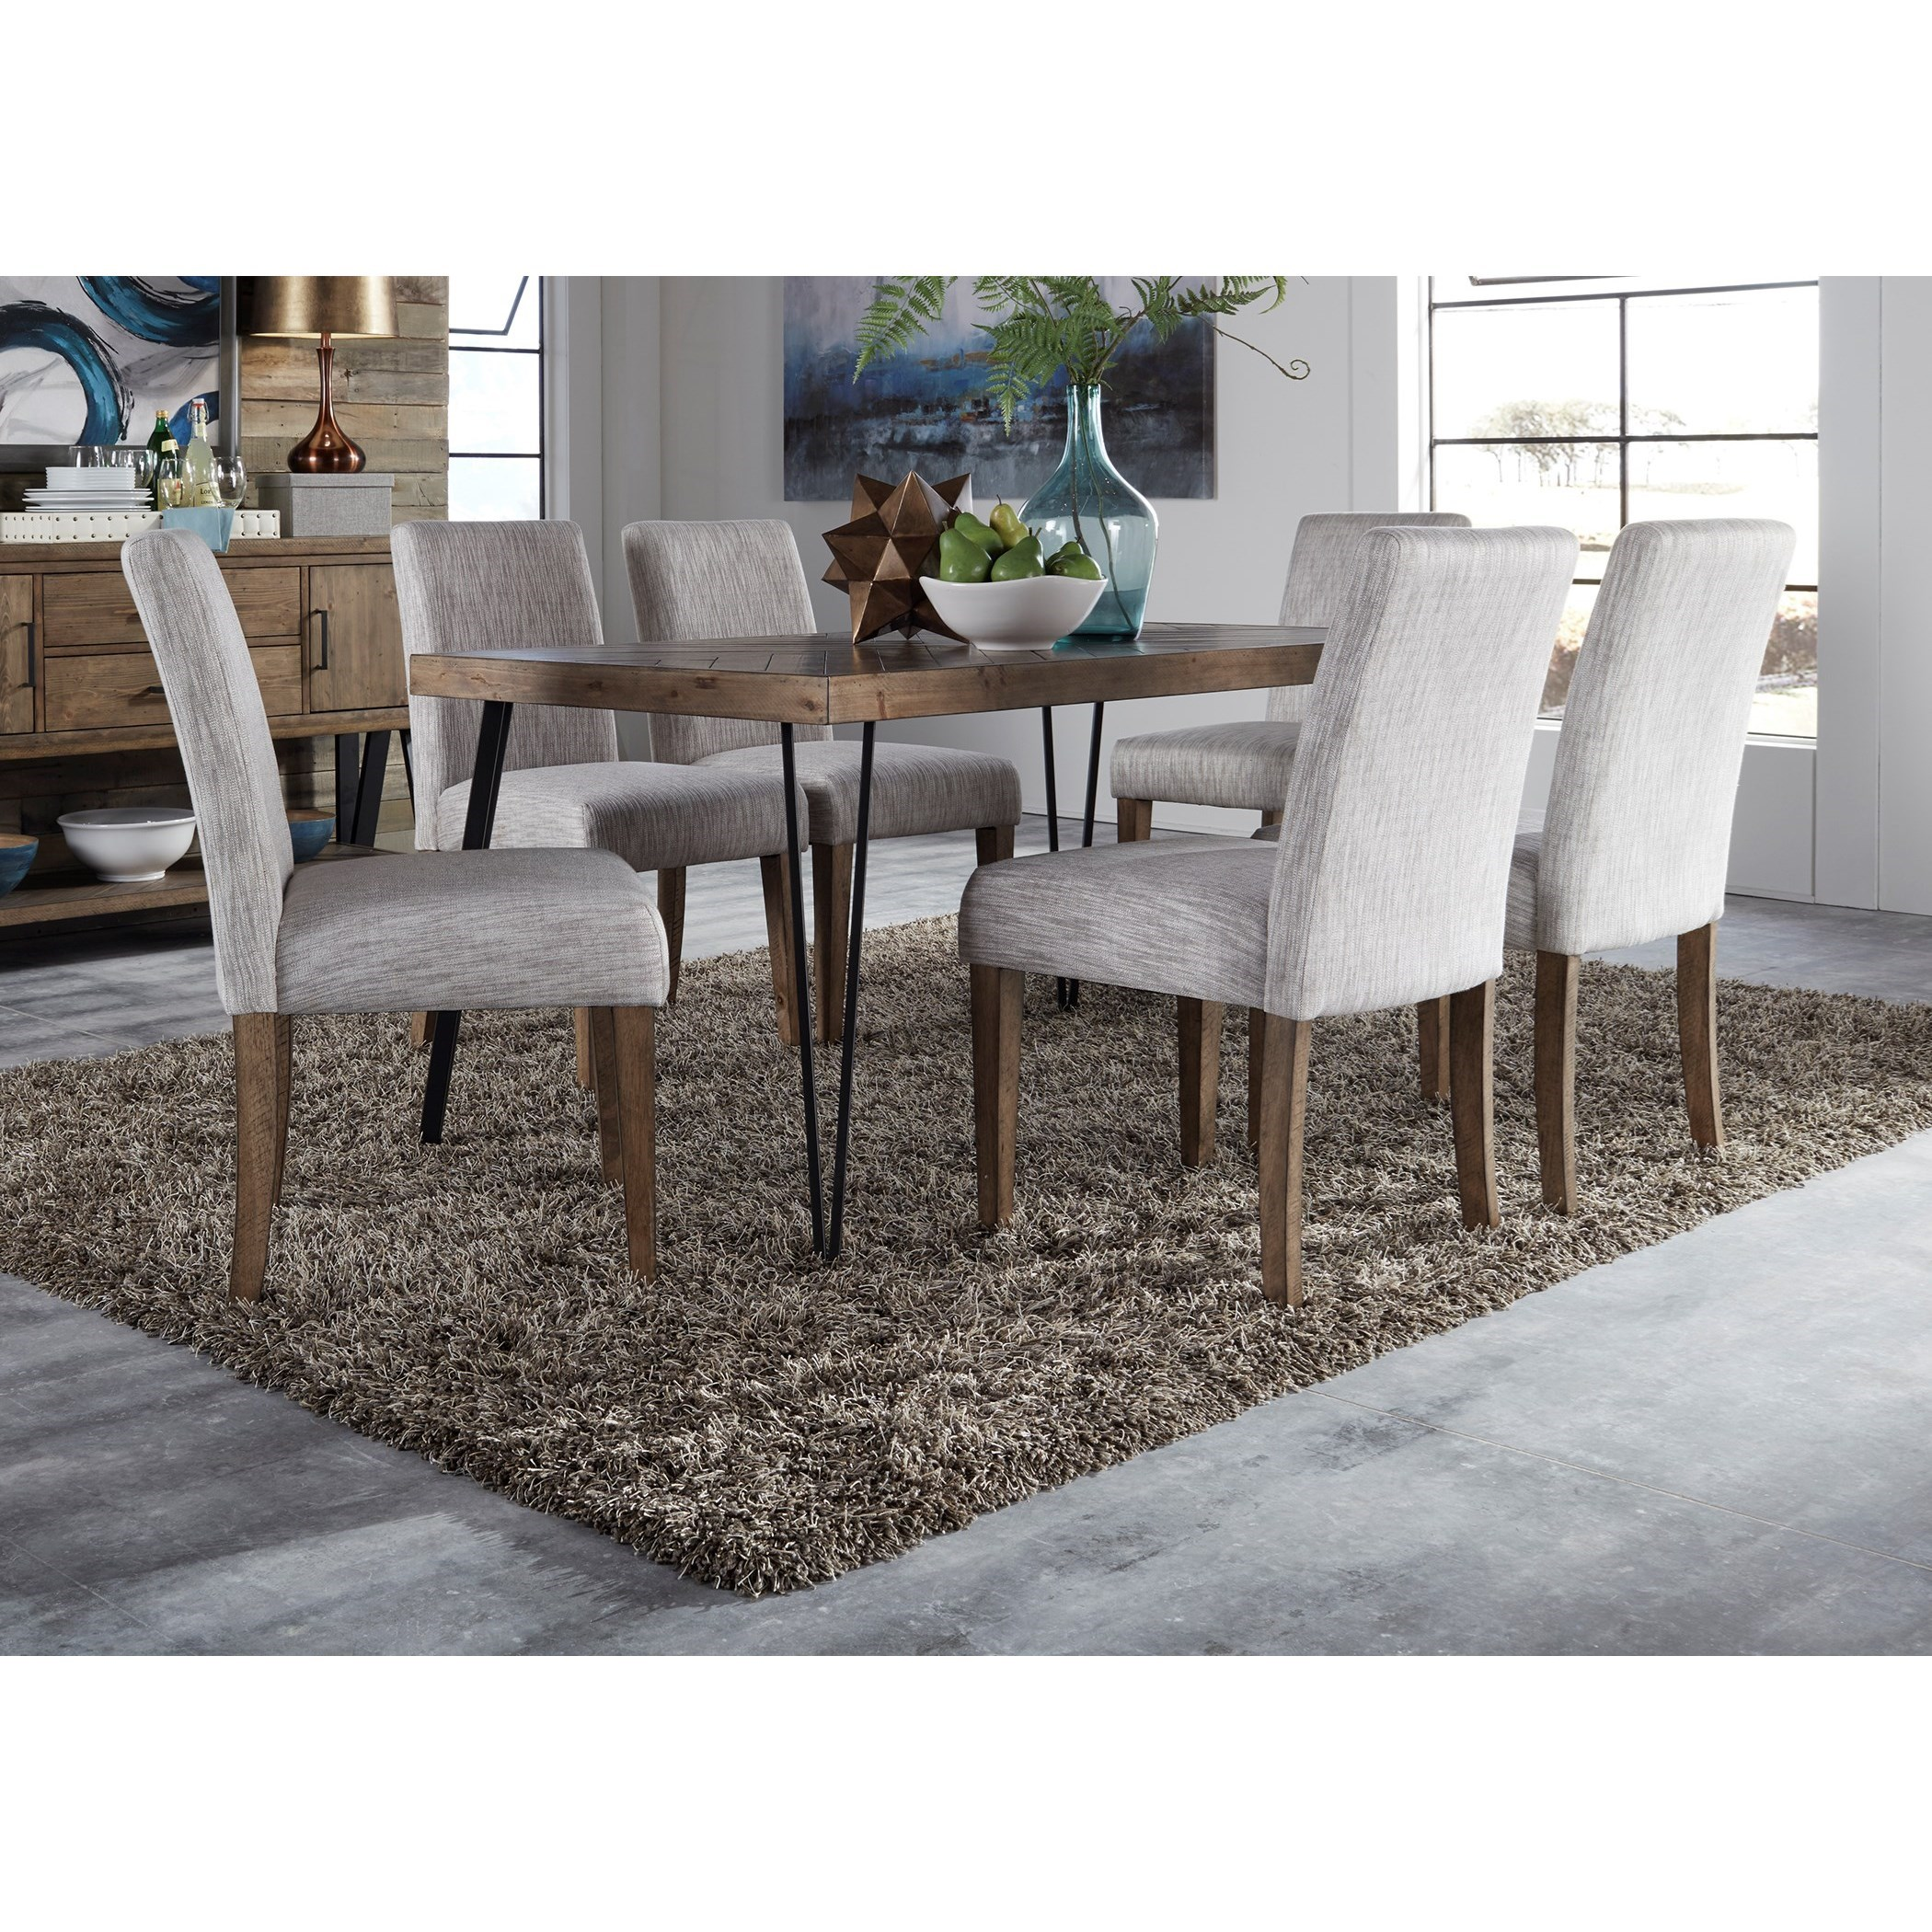 Horizons Table and Upholstered Chair Set by Freedom Furniture at Ruby Gordon Home